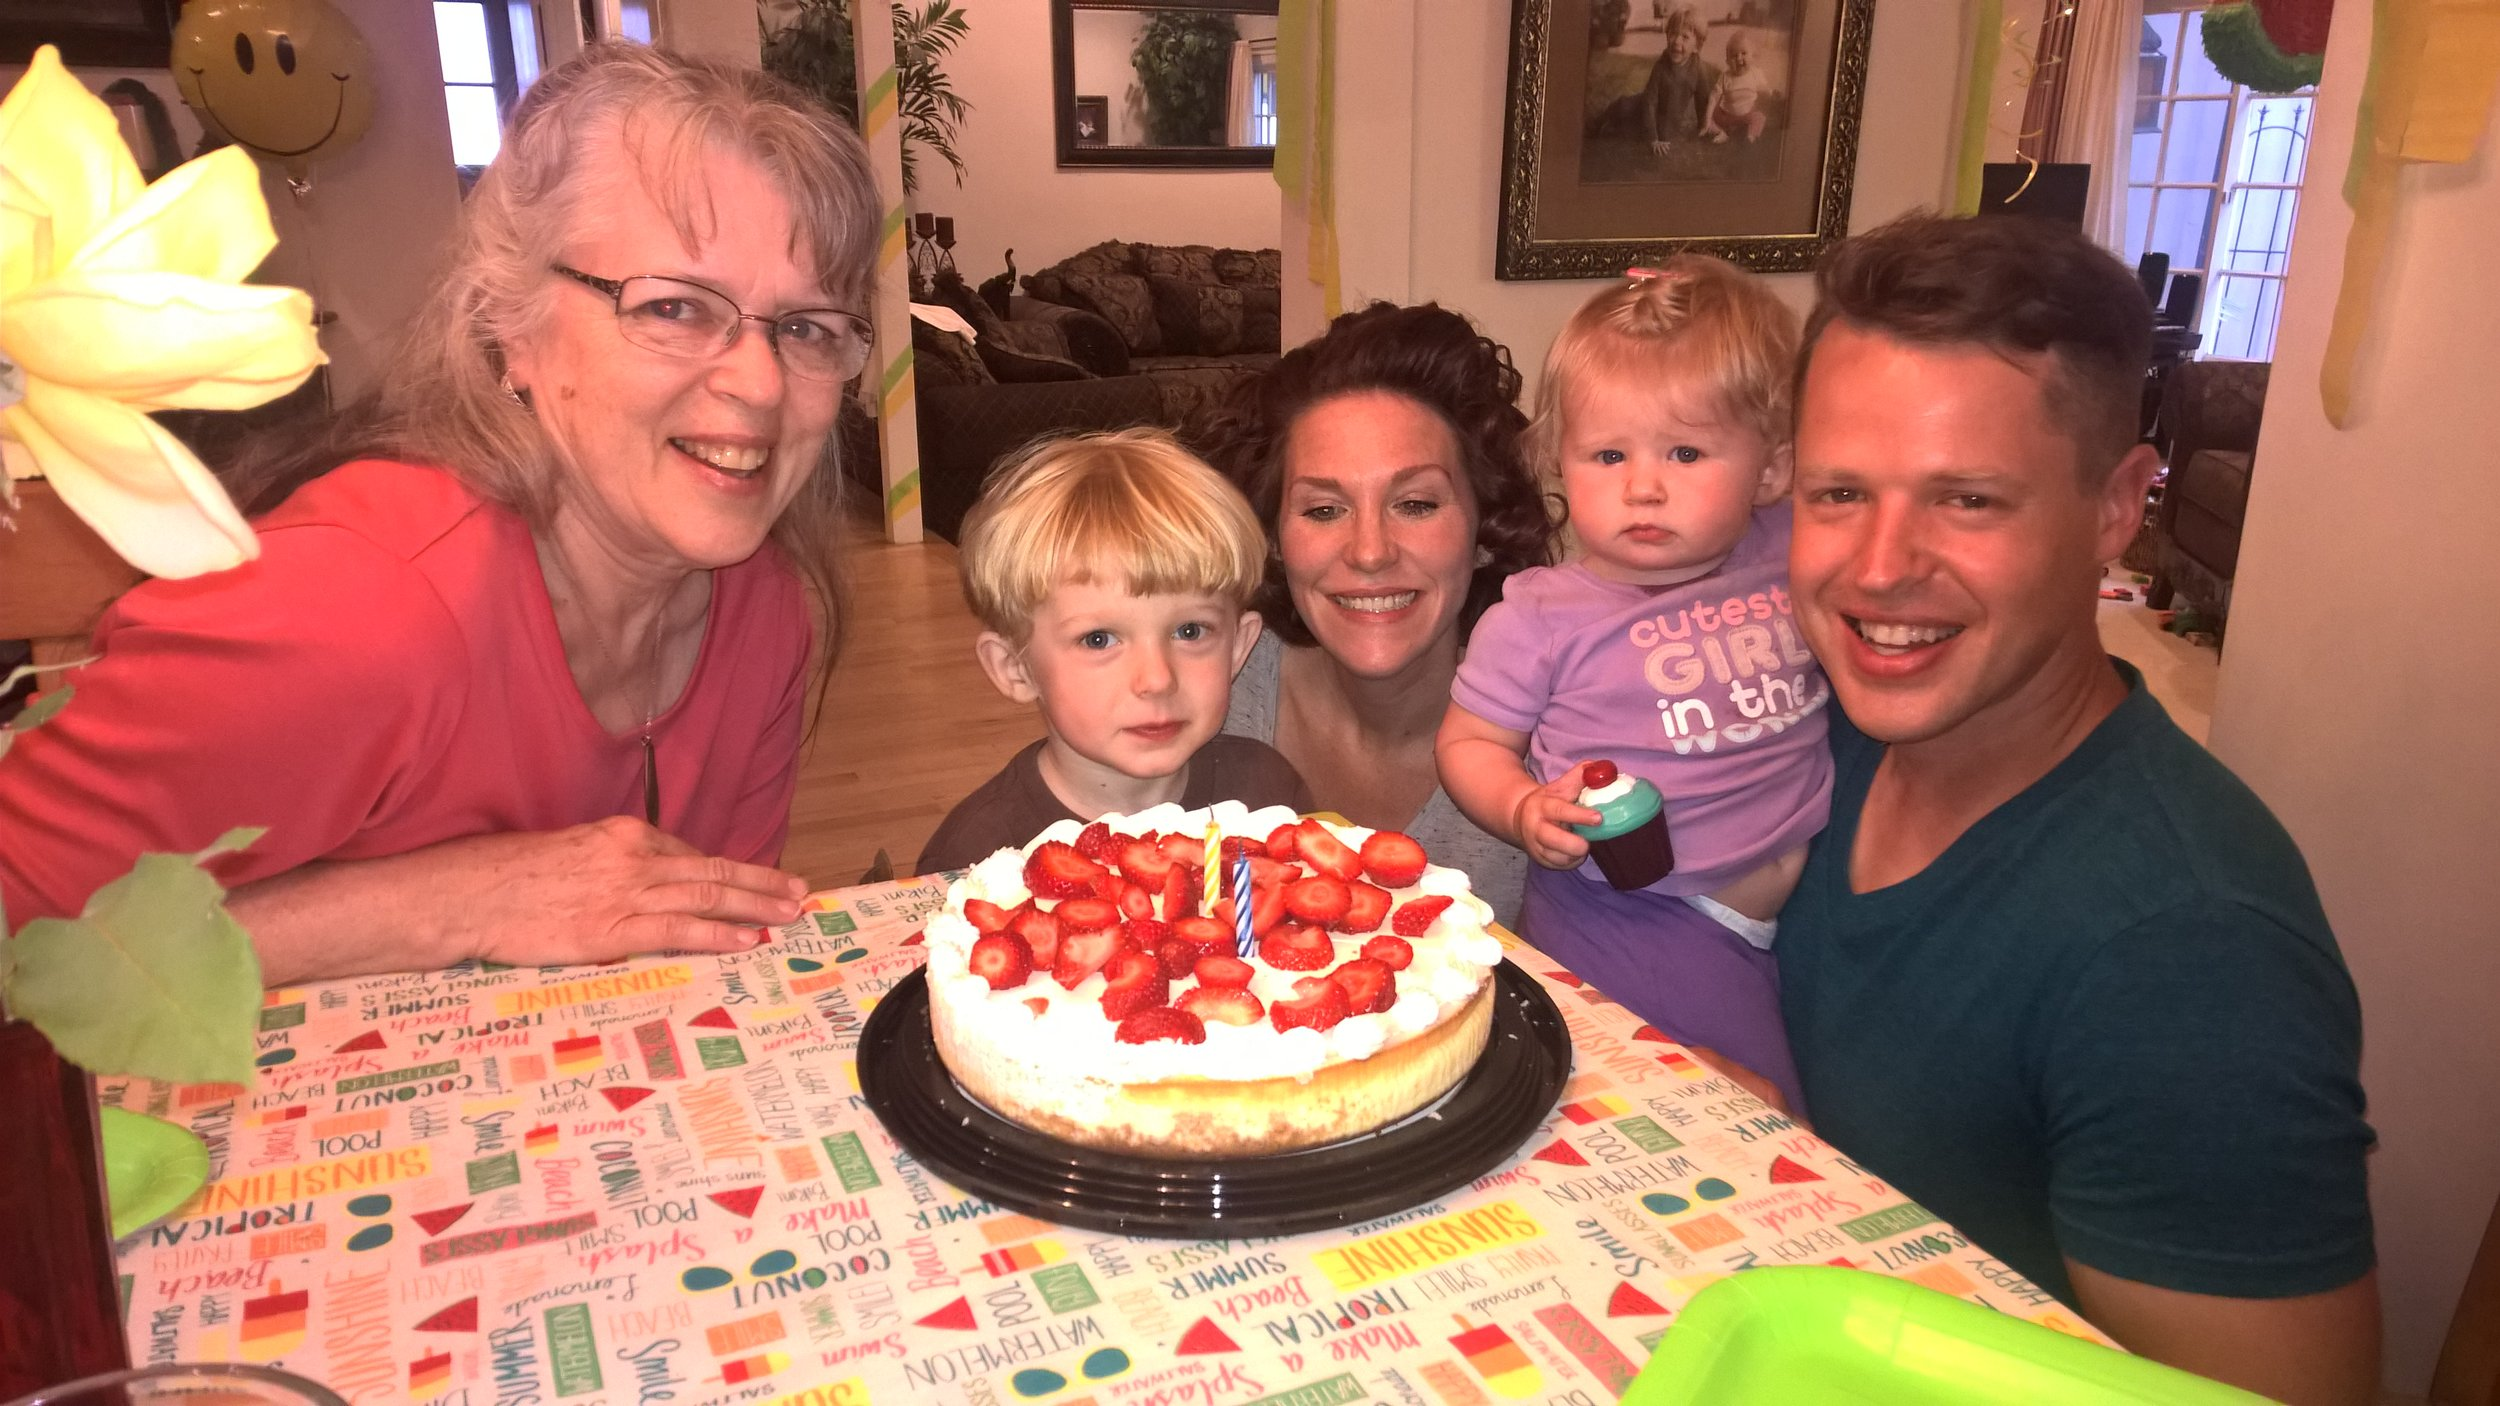 Surprise visit for Ezra's 36th birthday in LA this week as we remembered his birth on Mother's Day.